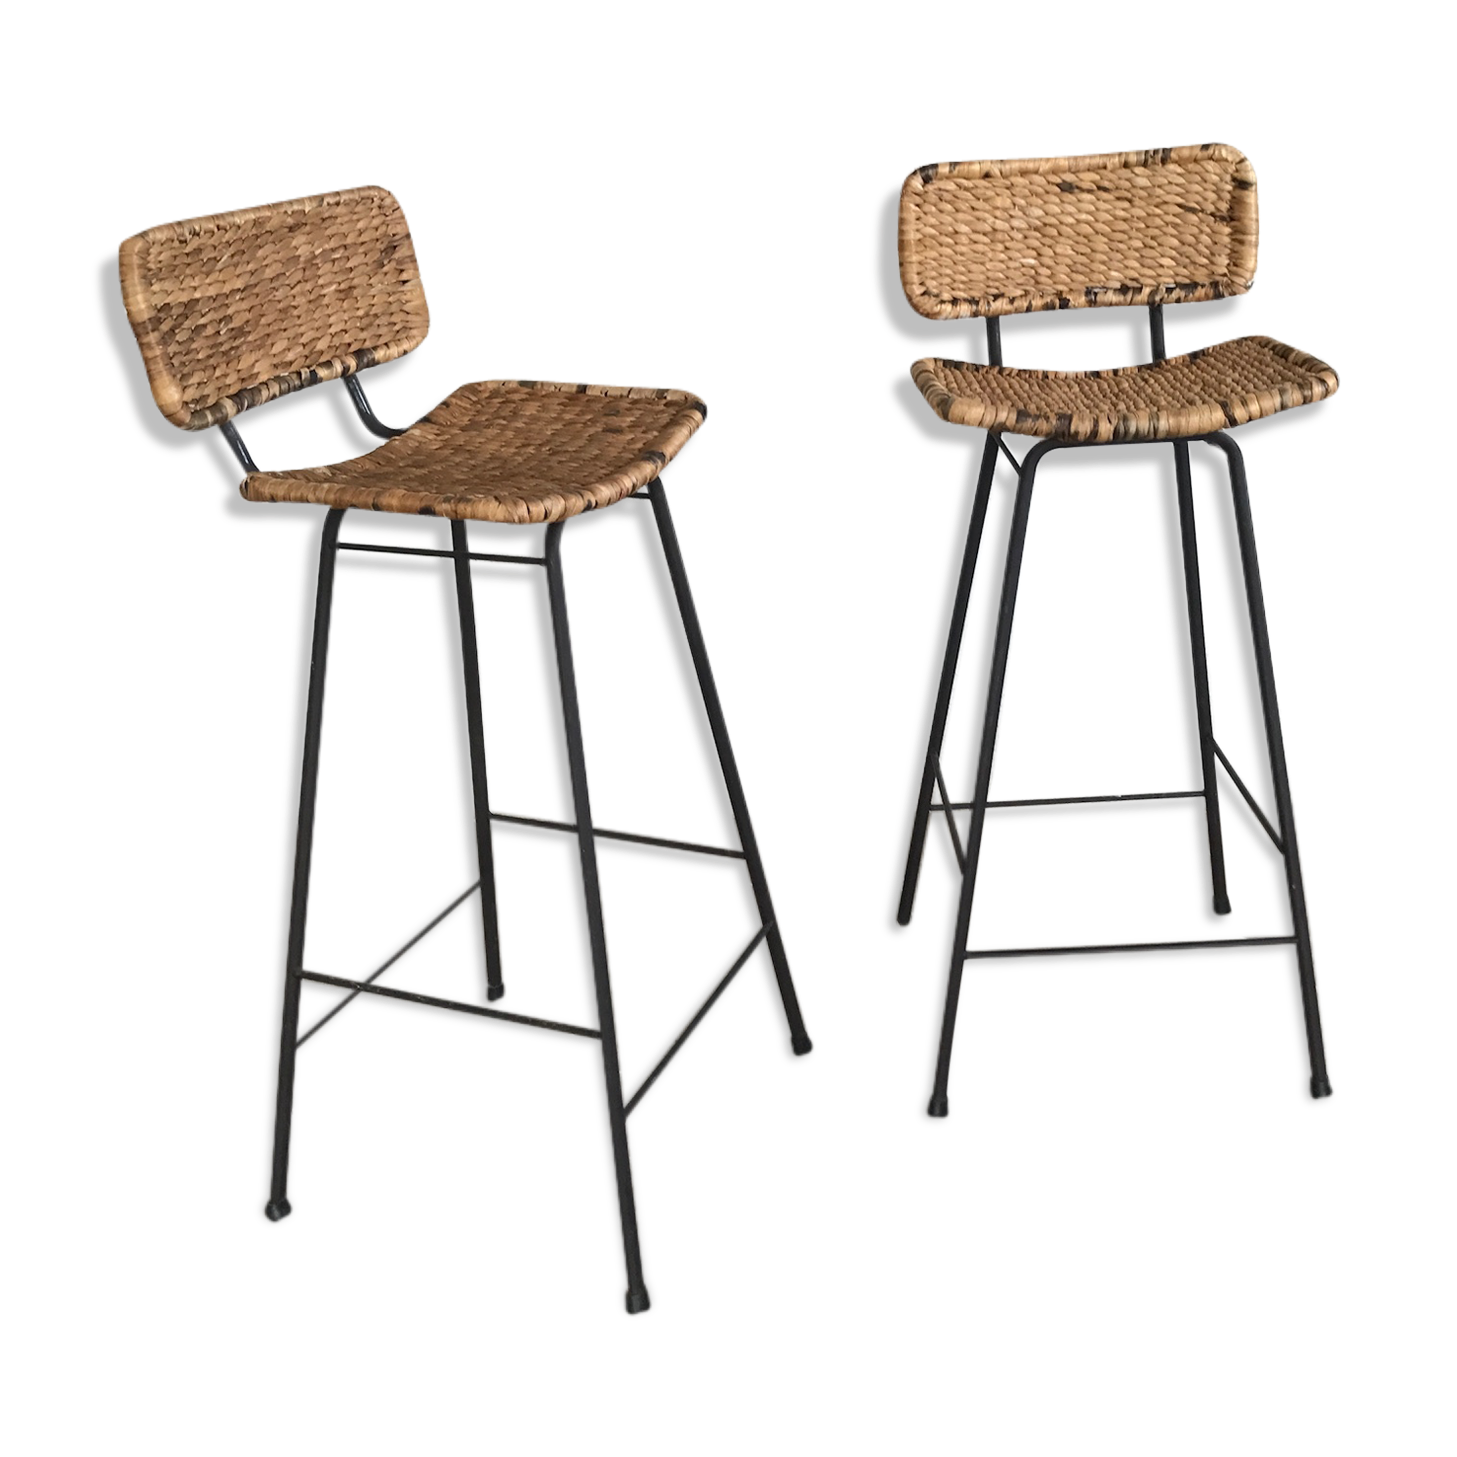 tabouret de bar en osier beautiful salon de jardin en rotin pas cher tabouret bar rotin with. Black Bedroom Furniture Sets. Home Design Ideas